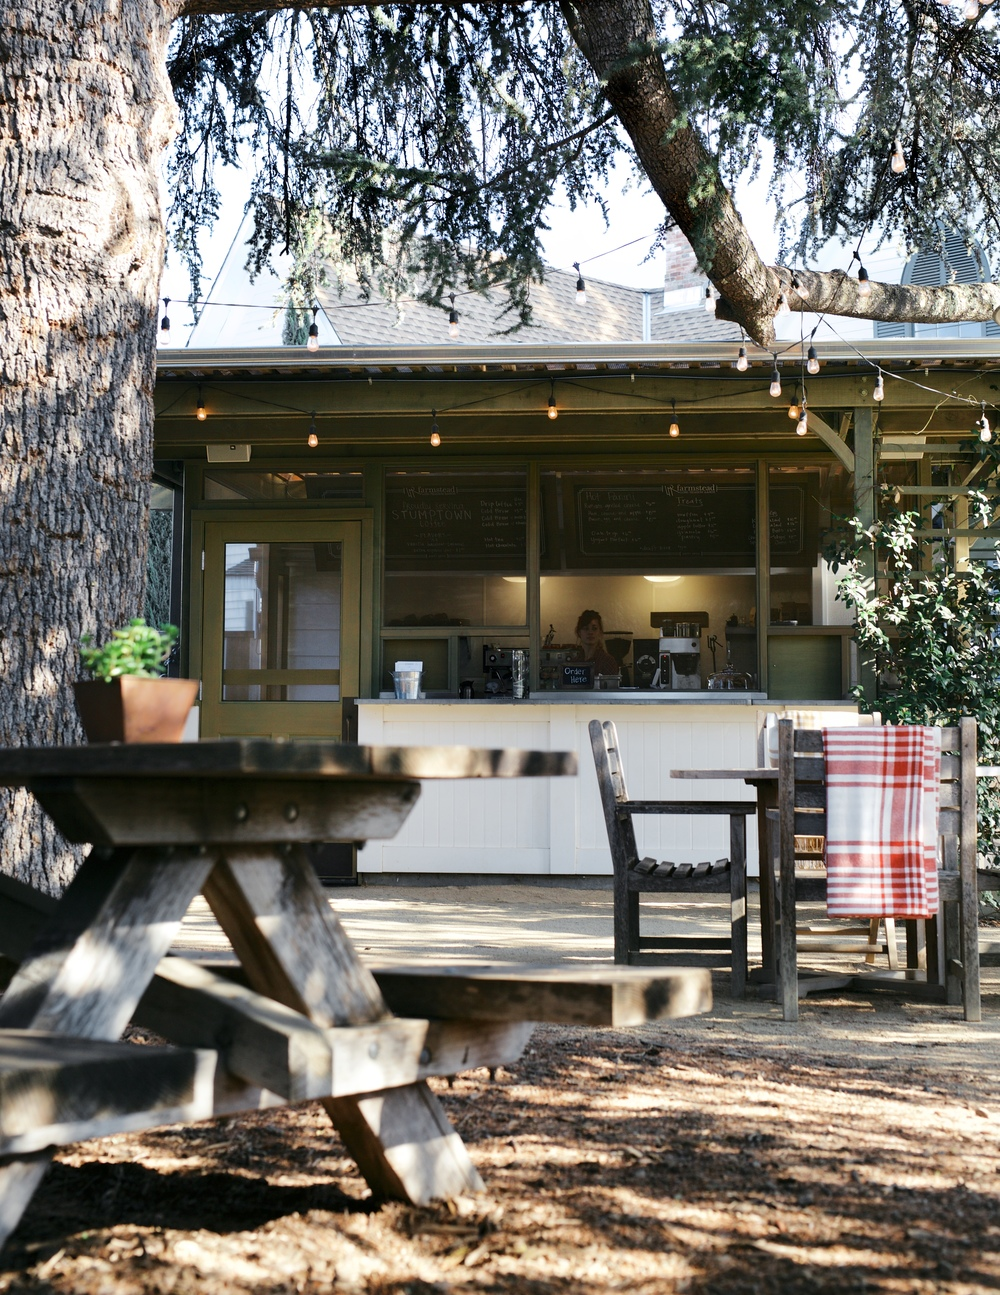 Farm to table at it's best,  Farmstead  in St. Helena is one of my favorite spots to hang out and have a cozy cup of morning coffee. Their adorable outdoor cafe sits underneath towering redwoods and is open daily.